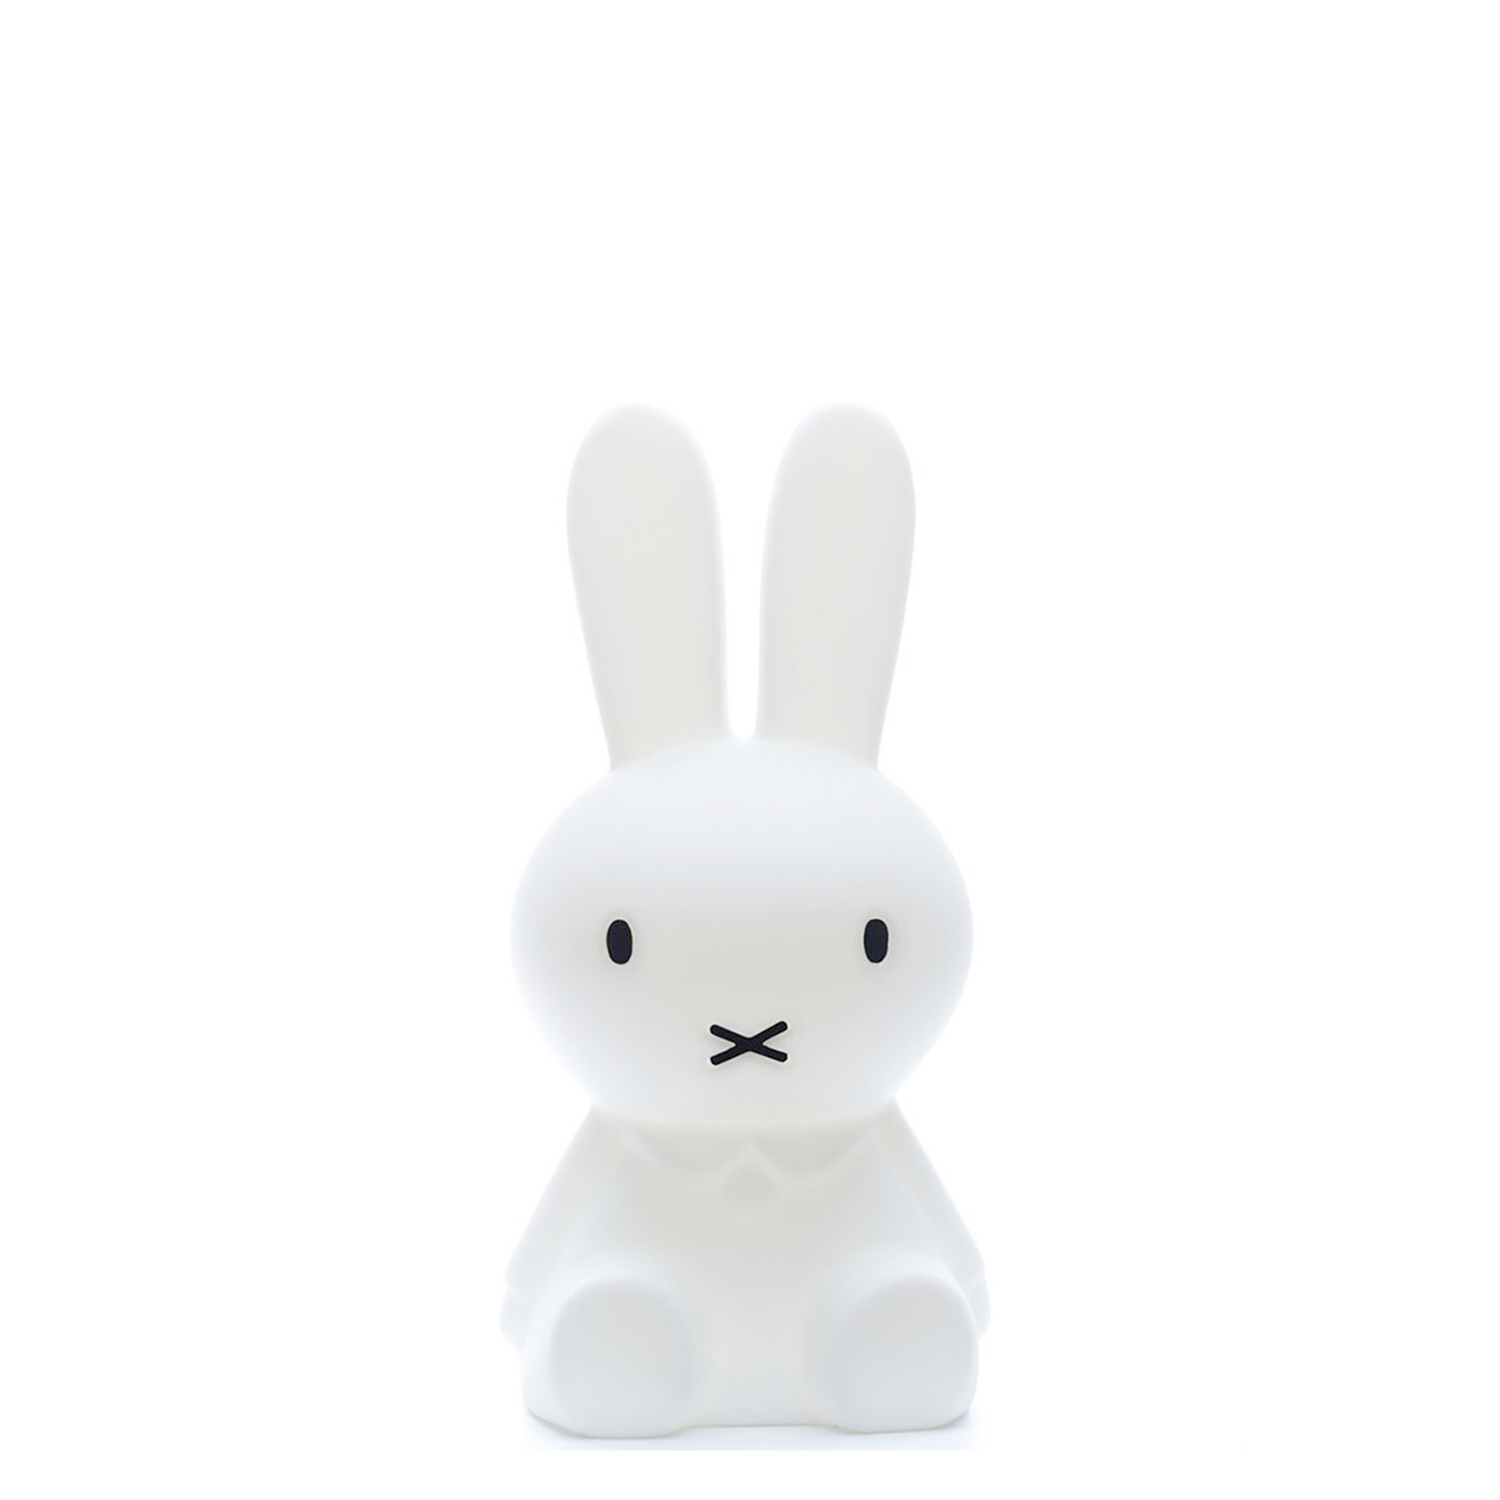 Kinderzimmerlampen - Mr Maria Lampe Miffy Star Light, L  - Onlineshop Engel und Bengel